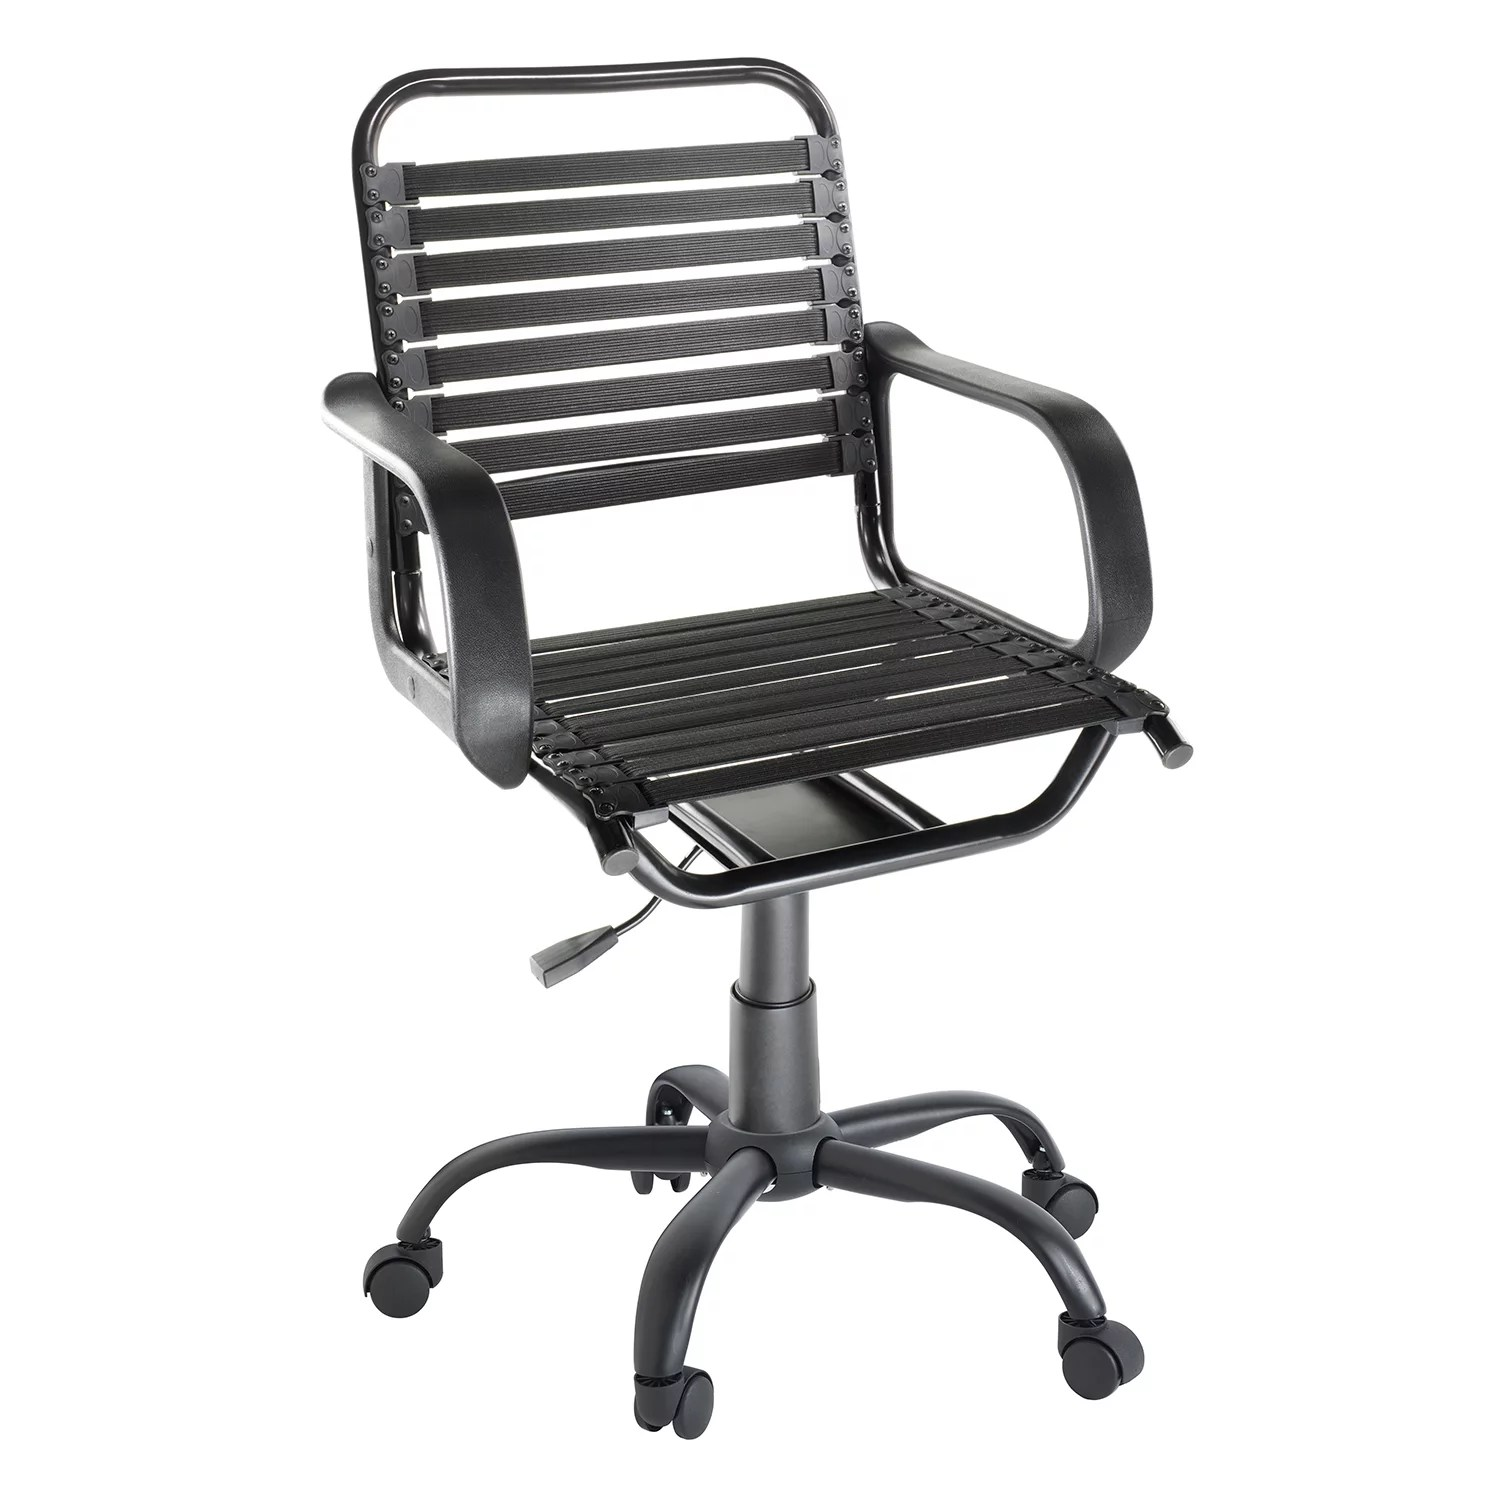 simple desk chair bouncy walmart by design bungee